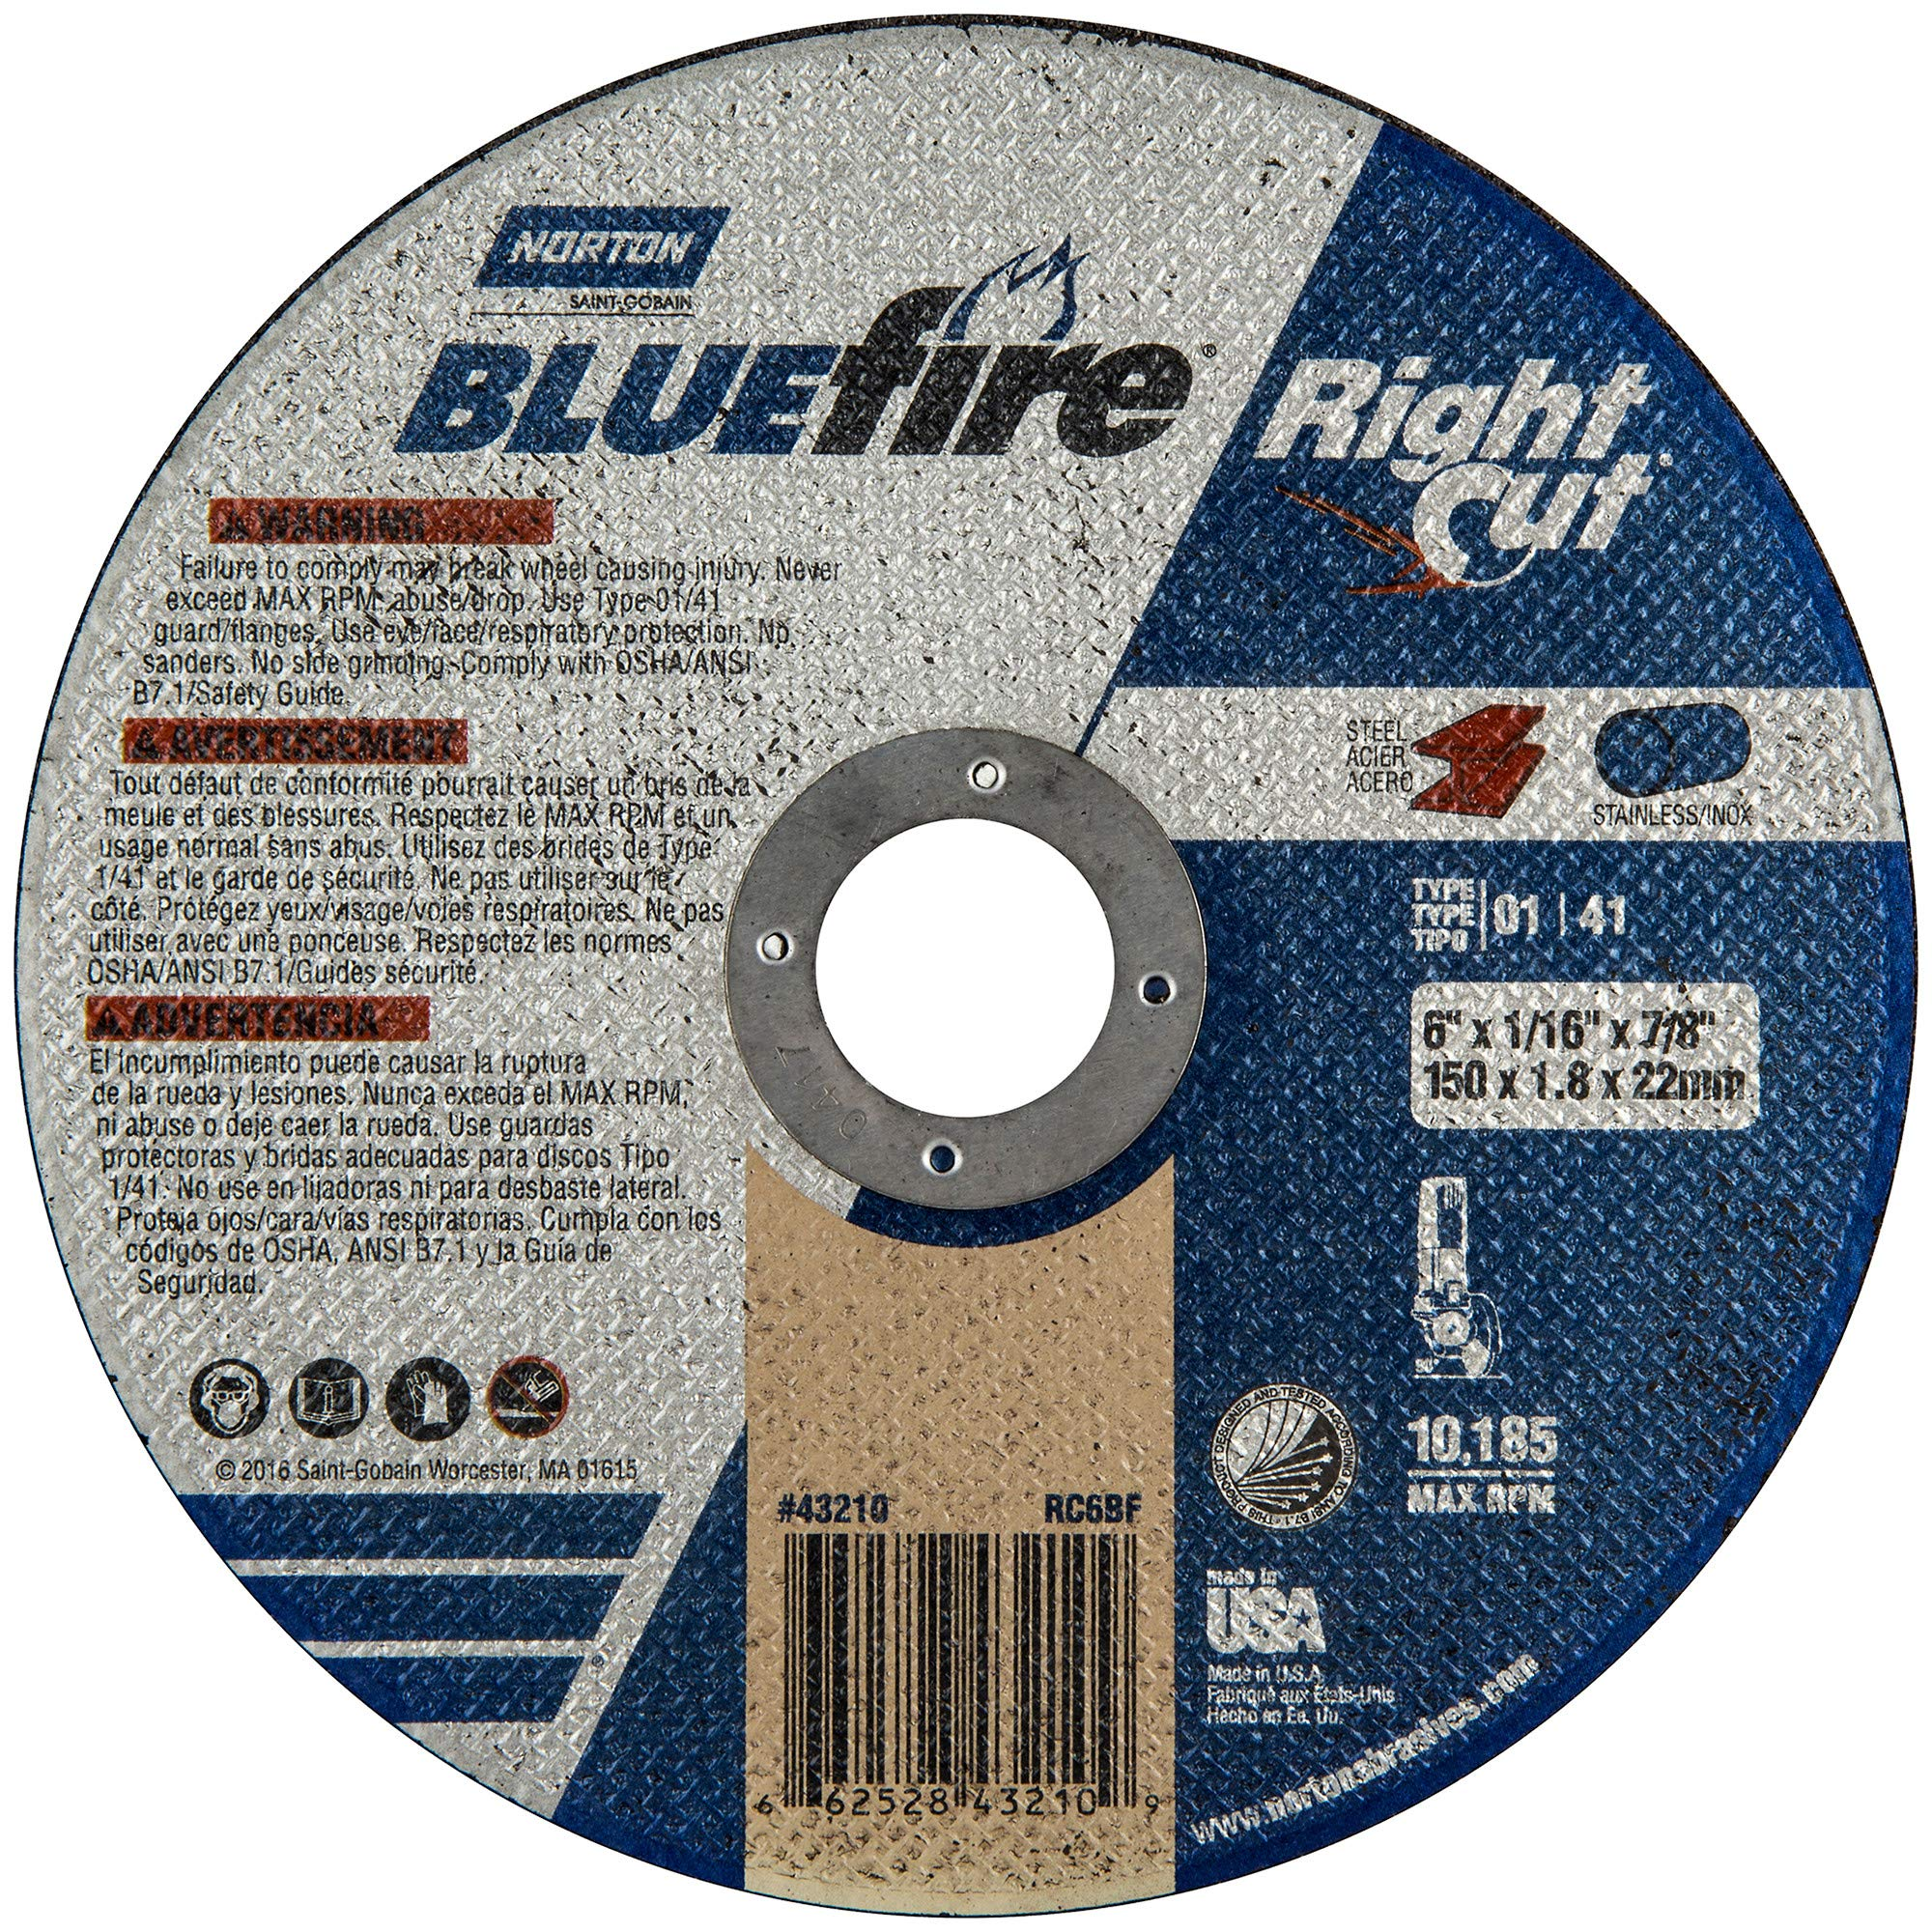 Norton Blue Fire Plus Right Cut Right Angle Grinder Reinforced Abrasive Flat Cut-off Wheel, Type 01, Zirconia Alumina, 7/8'' Arbor, 6'' Diameter x 0.045'' Thickness (Pack of 25)